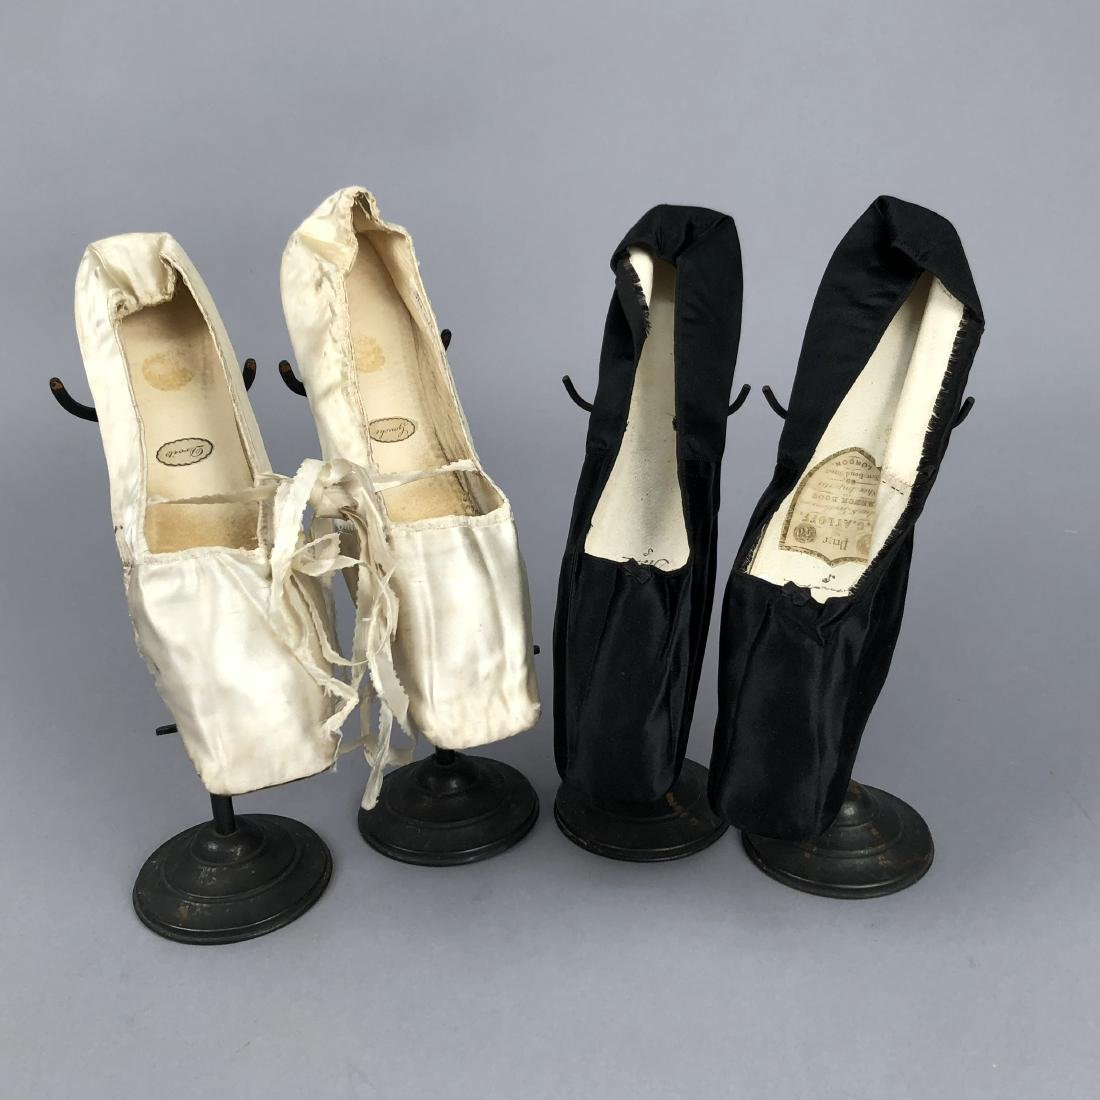 TWO PAIR LADIES' SATIN FLATS, 1830s - 1840s